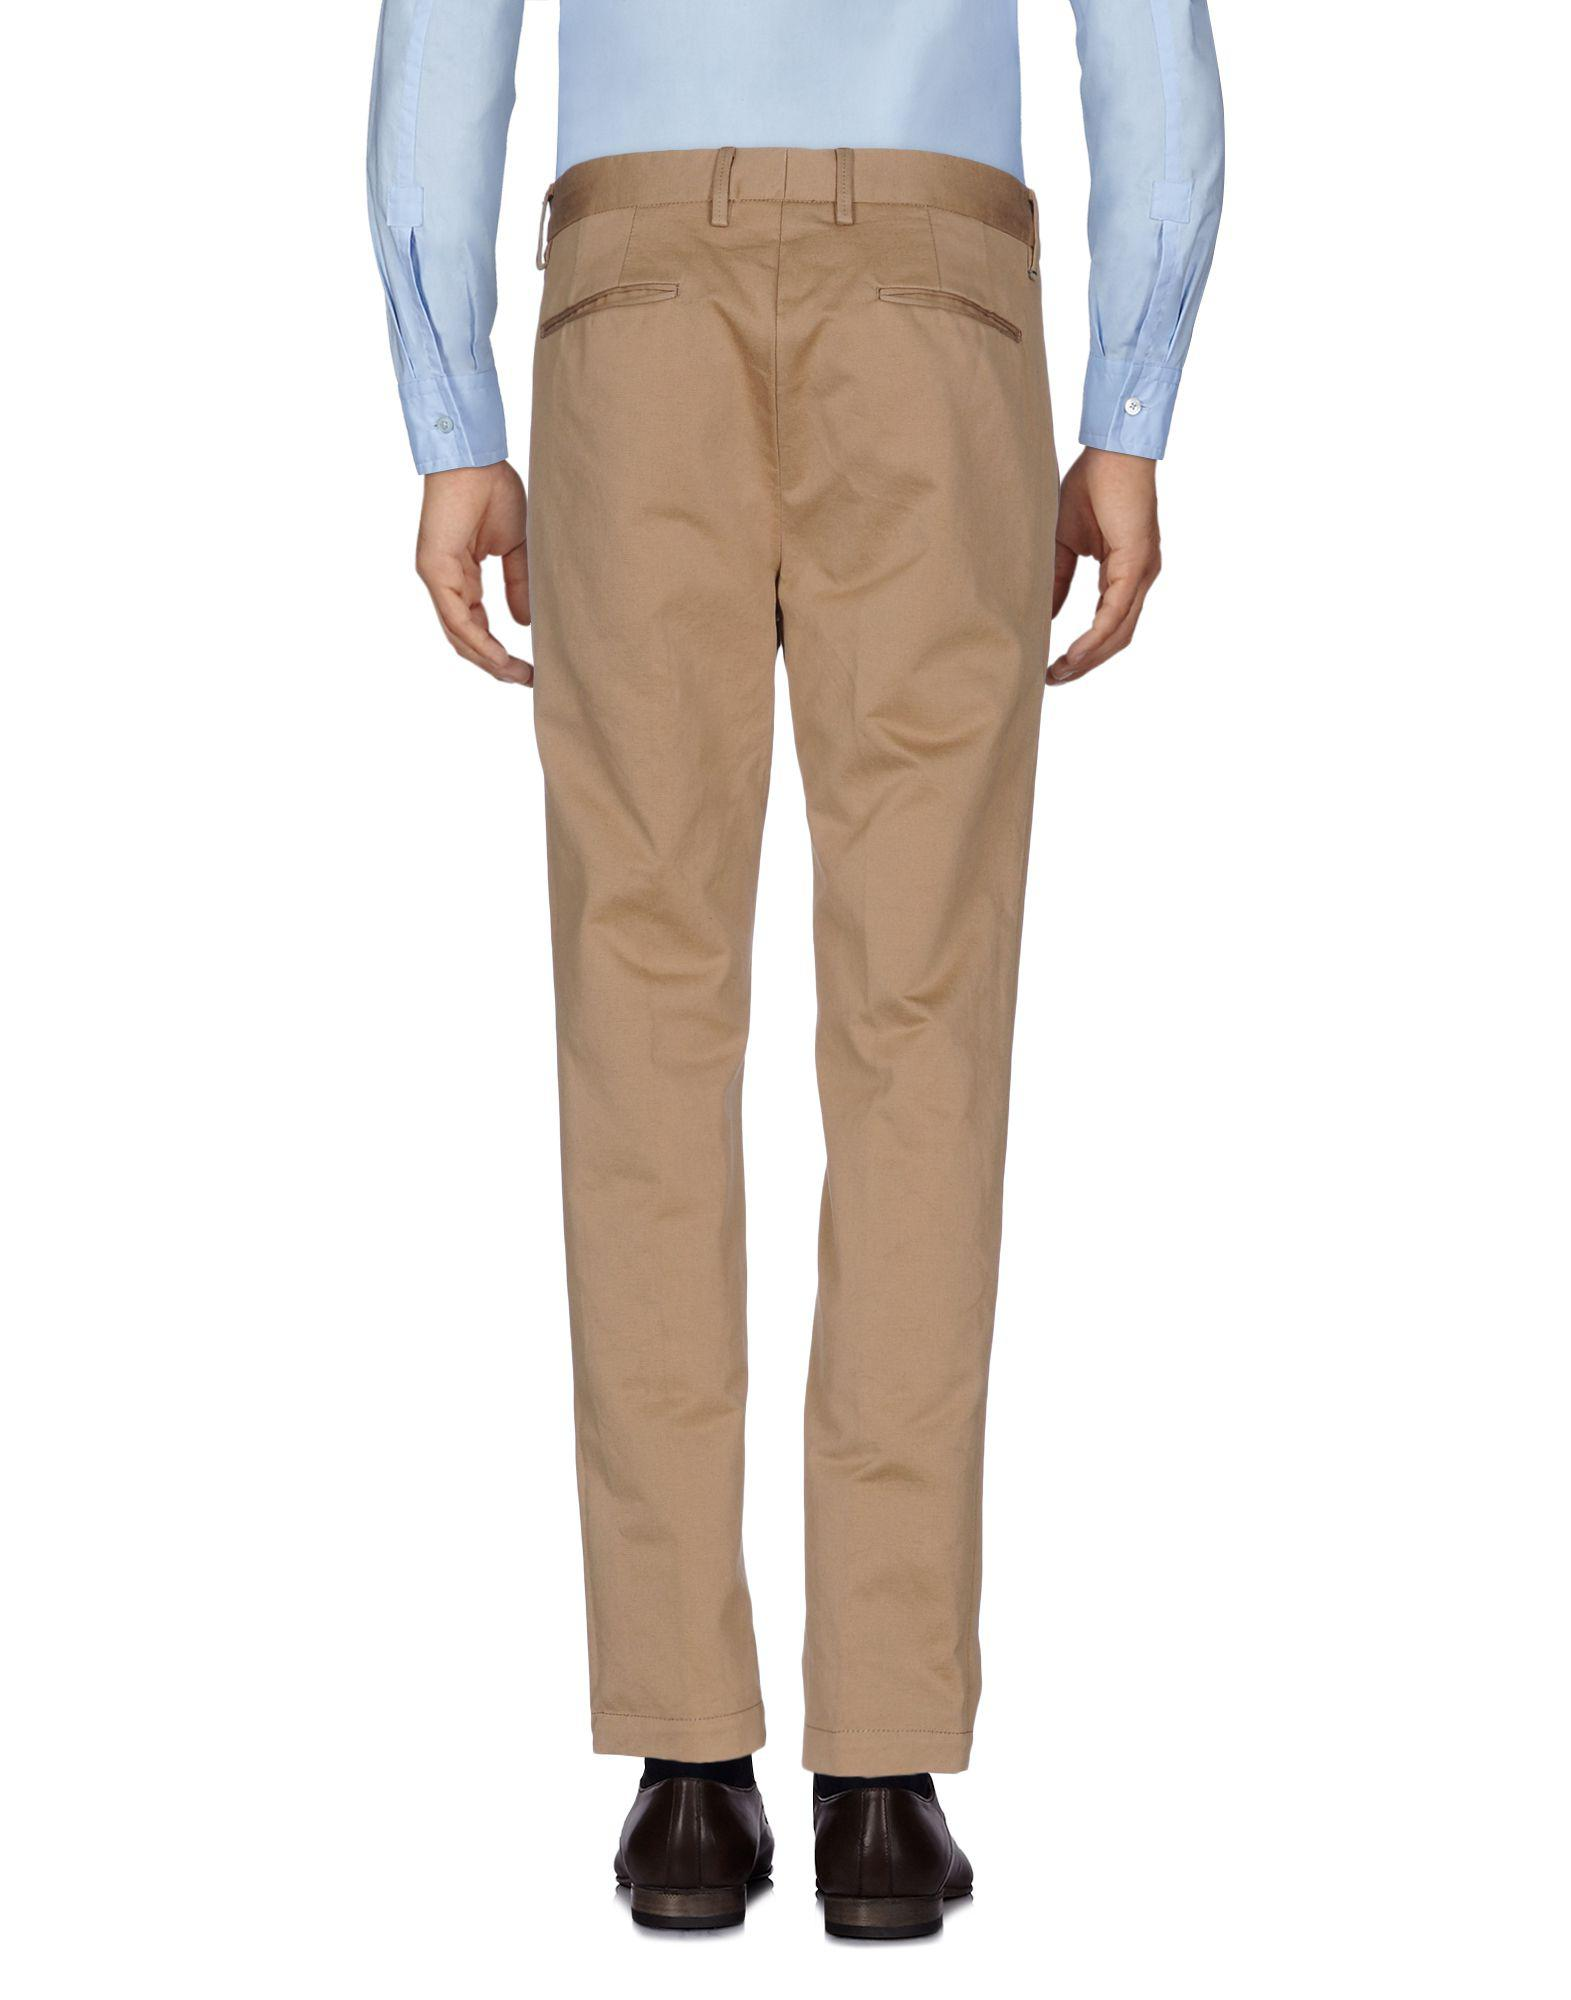 Pence Cotton Casual Trouser in Sand (Natural) for Men